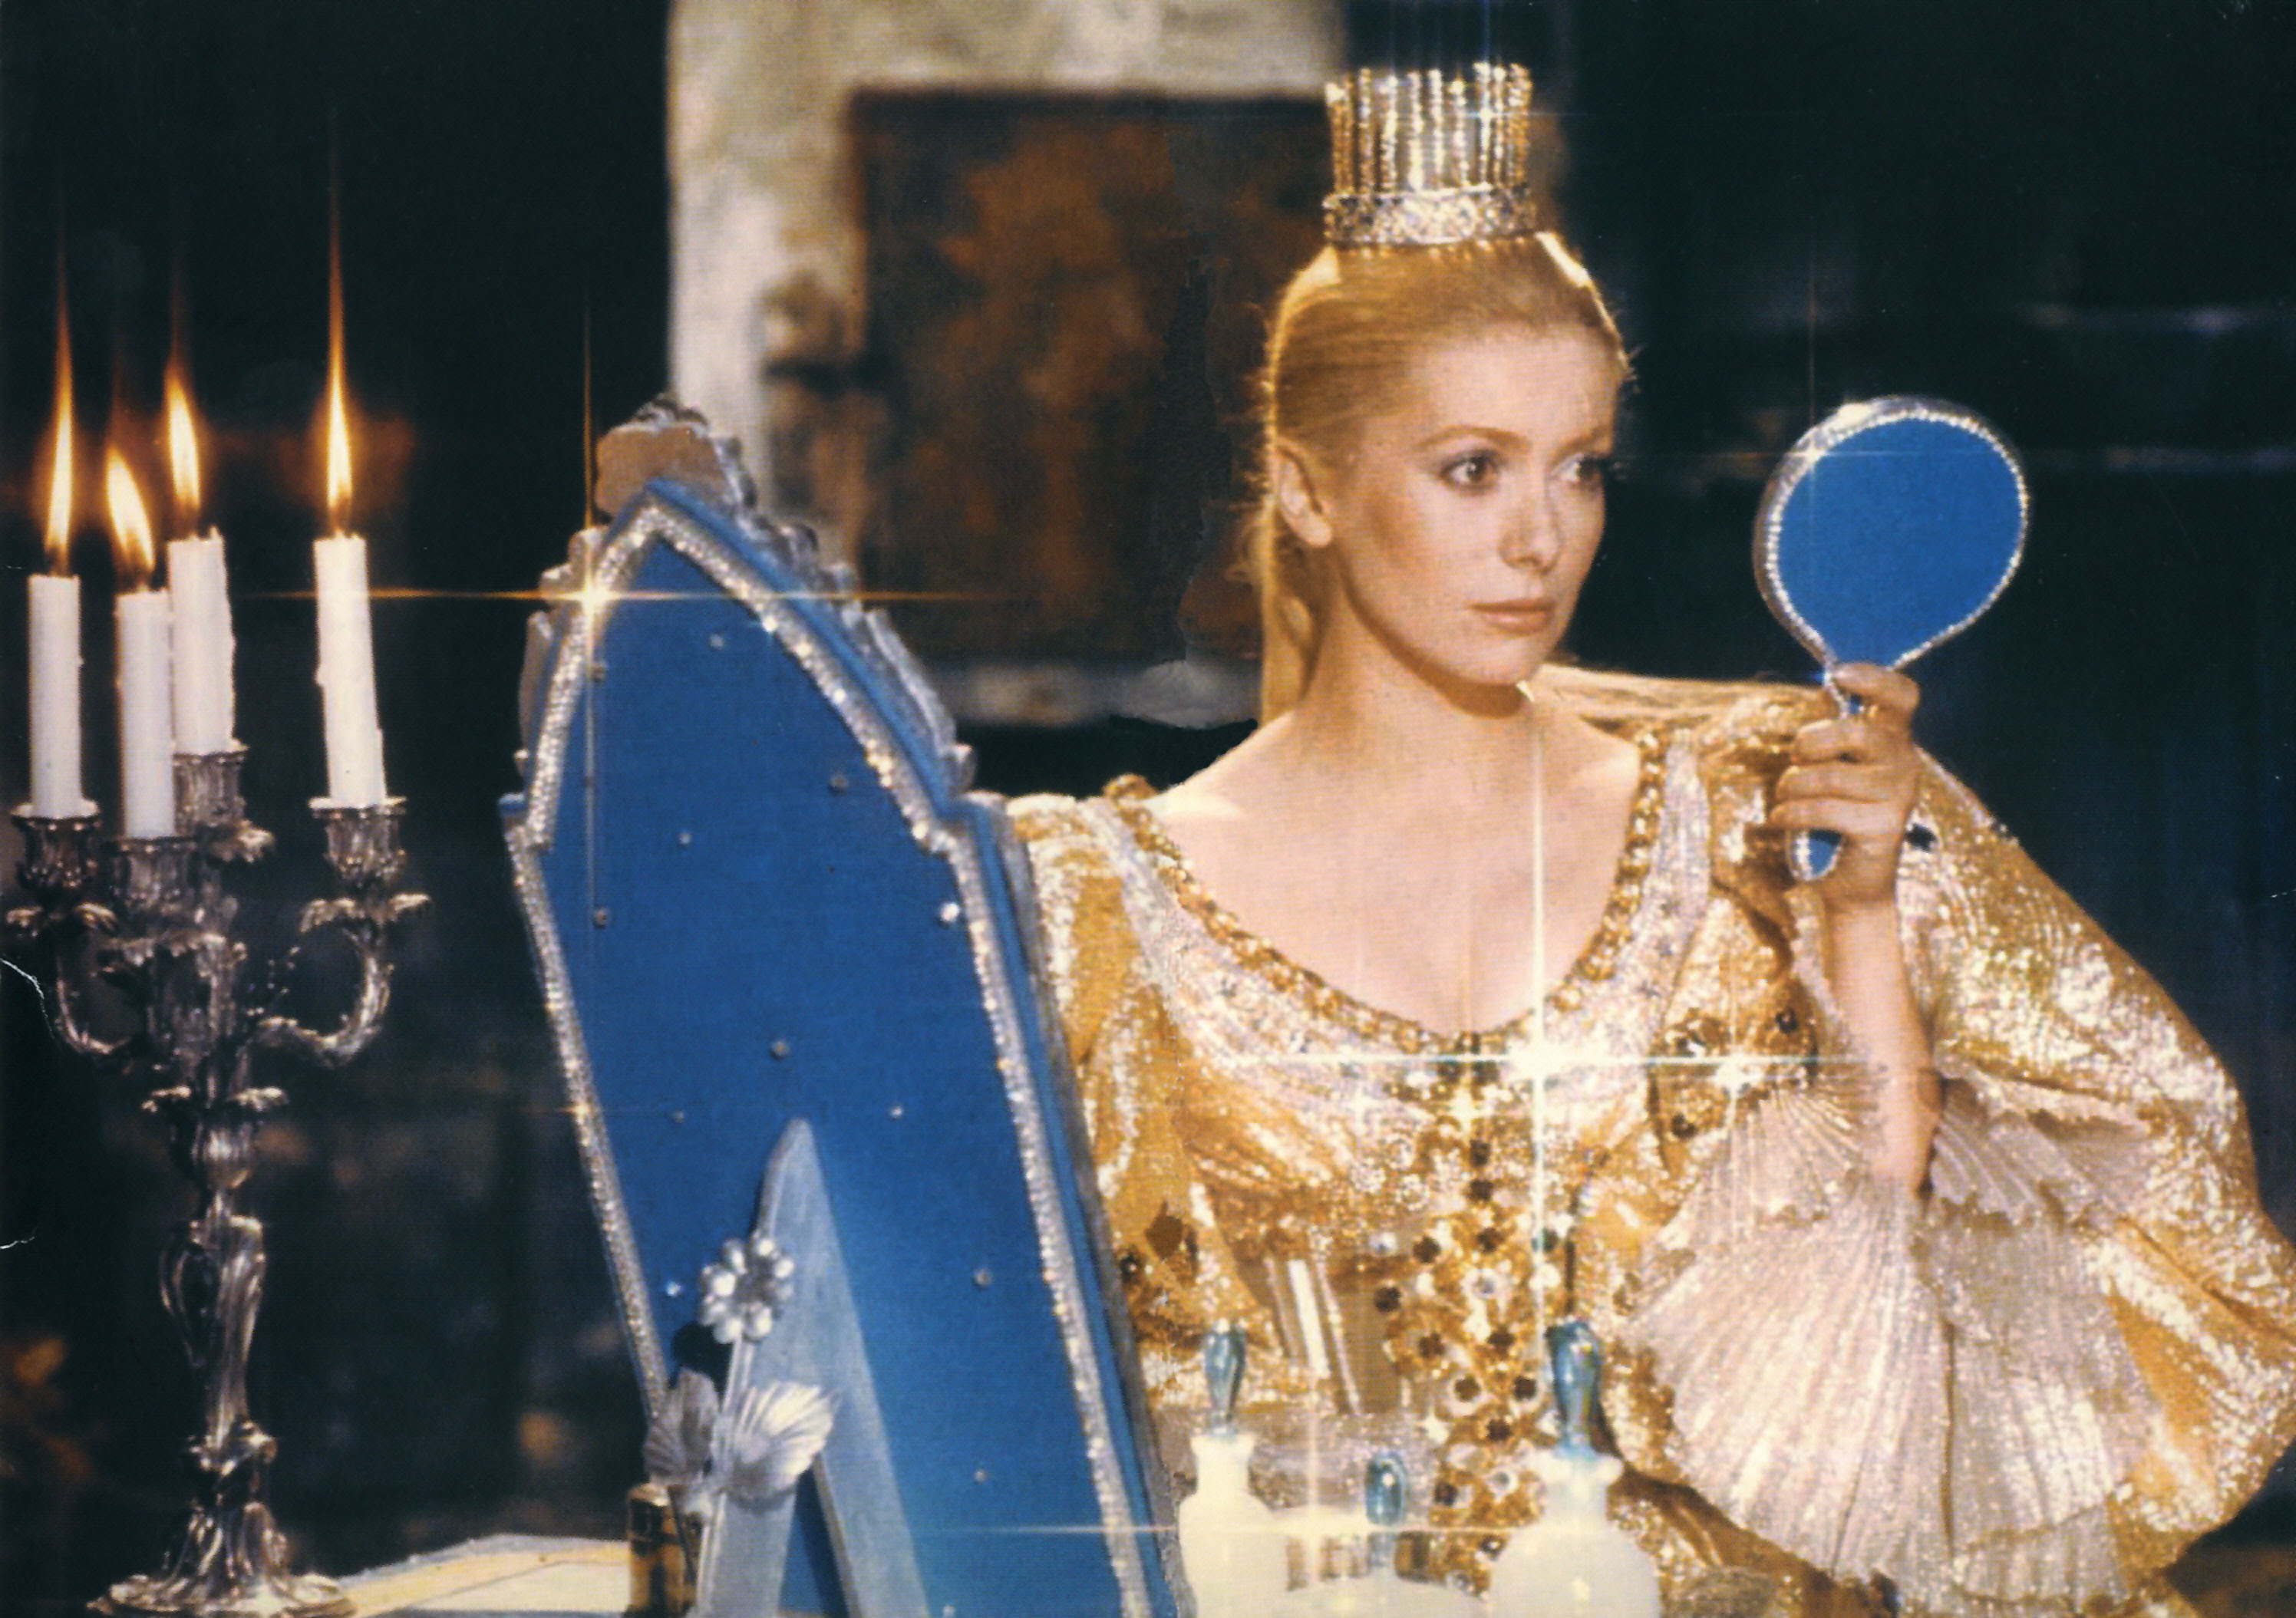 Catherine Deneuve as The Princess in Donkey Skin (1970)